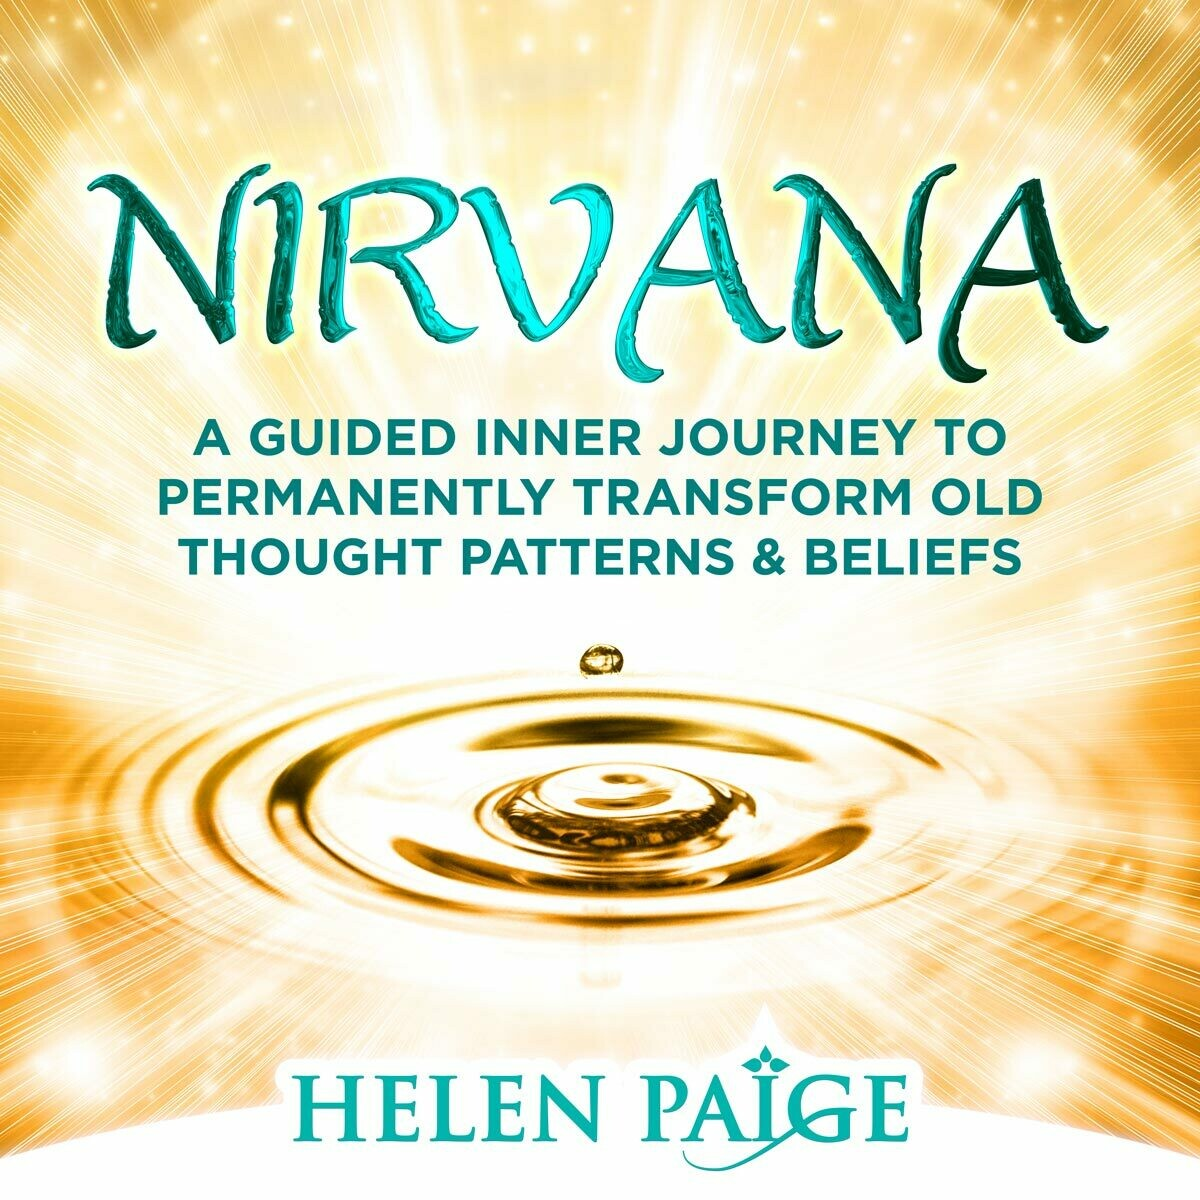 NIRVANA: A guided inner journey to permanently transform old thought patterns and beliefs